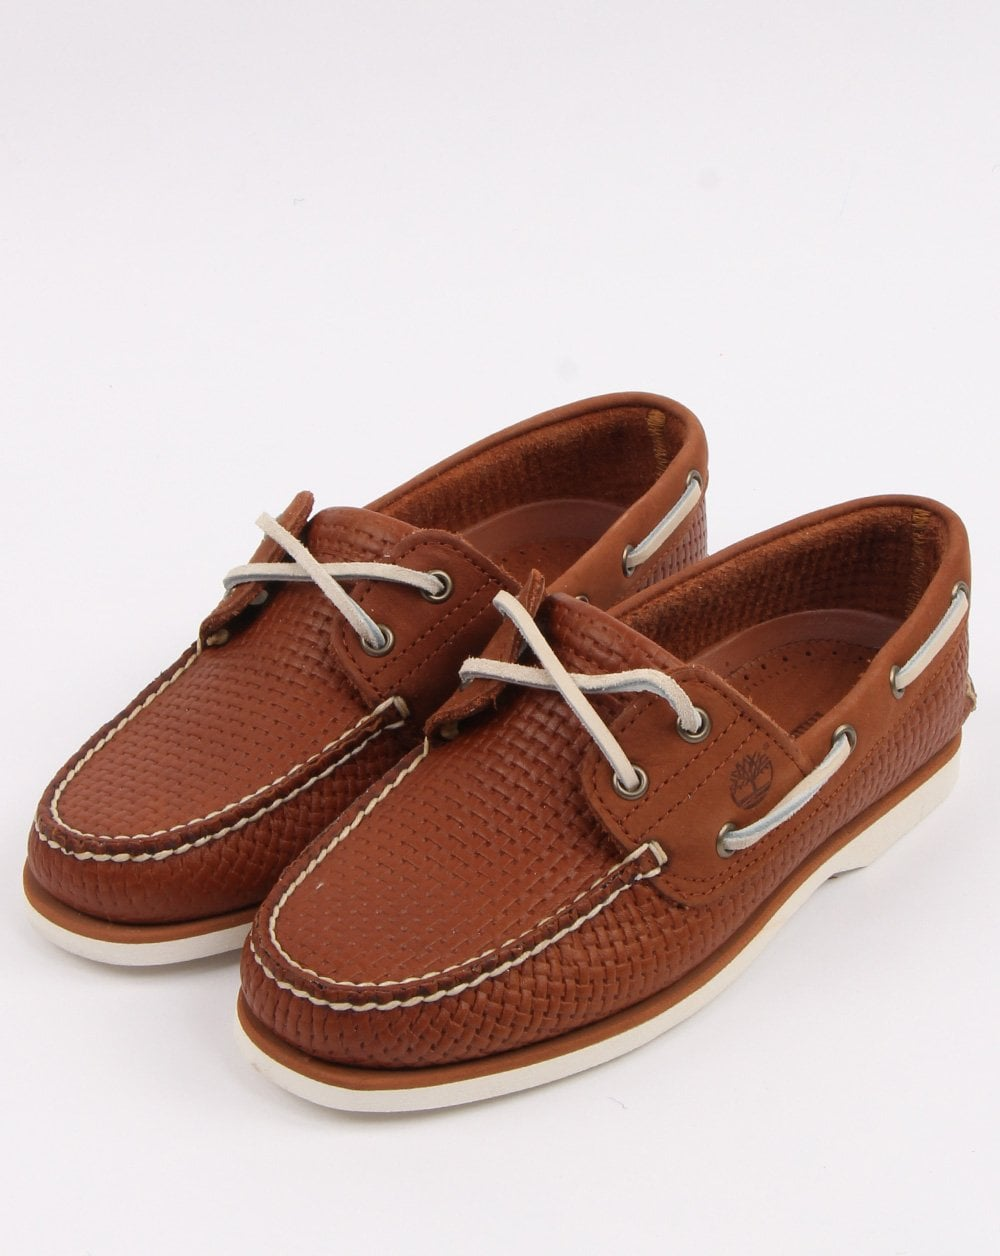 a30e99573f Timberland Classic Boat 2 Eye Shoe Brown